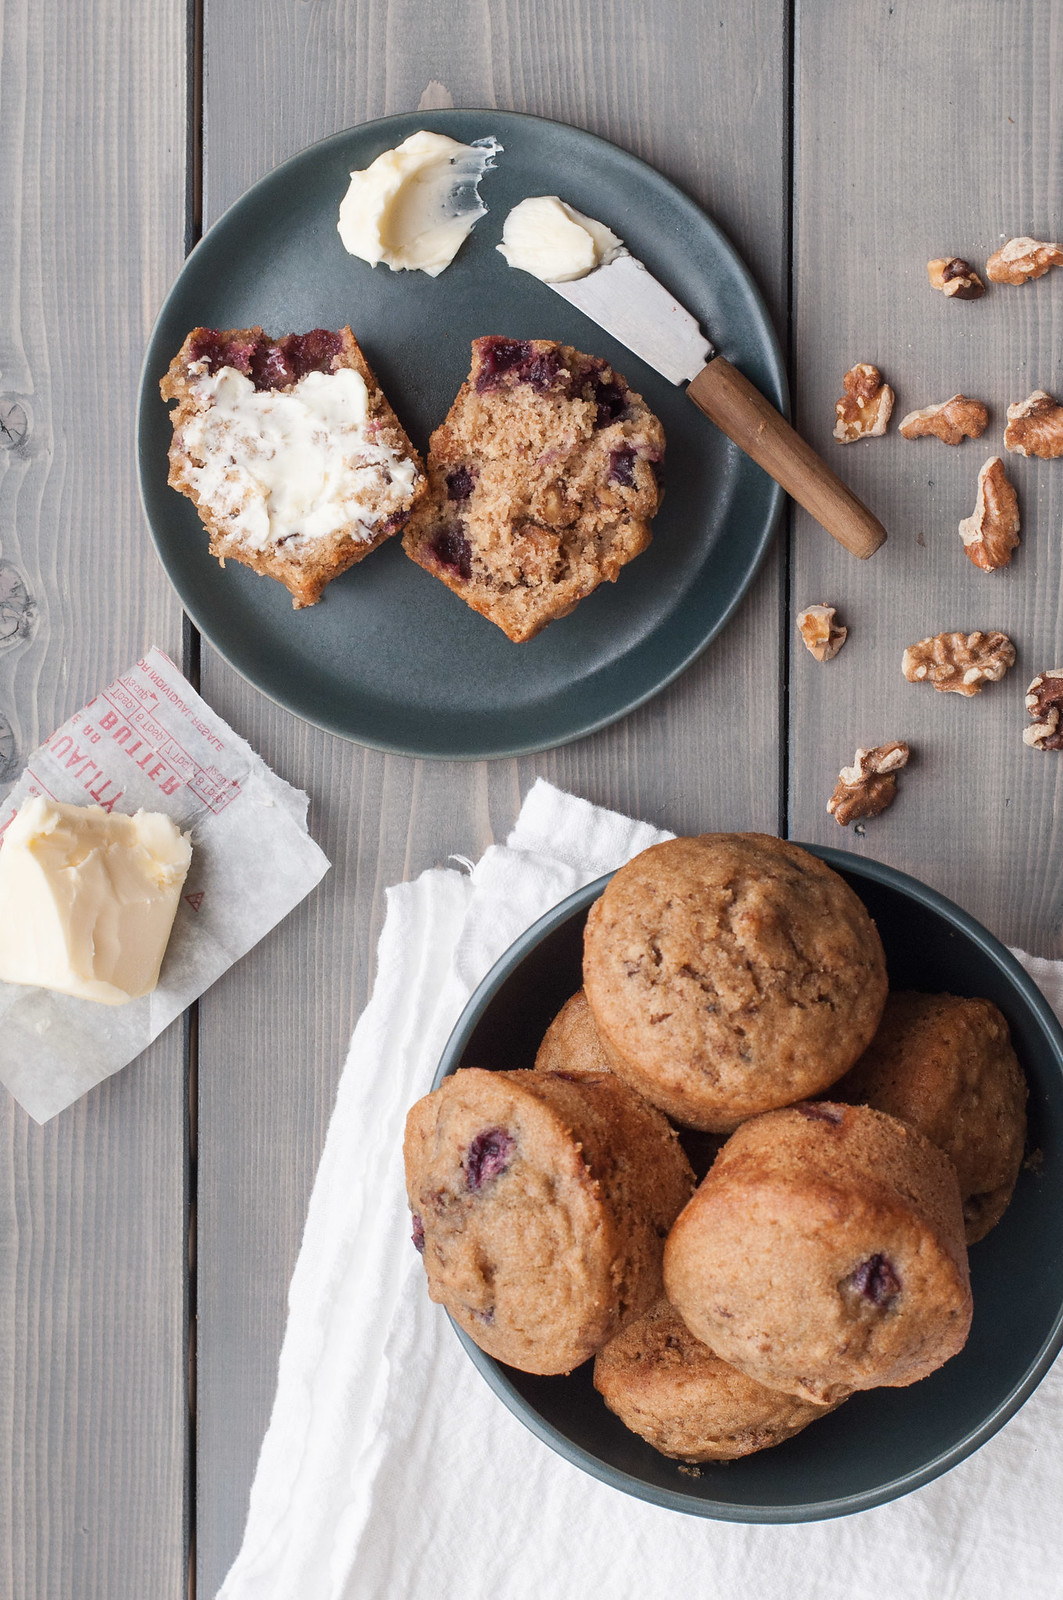 A guide and recipe for the best gluten-free muffins you've ever tasted | #glutenfree #dairyfree #breakfast